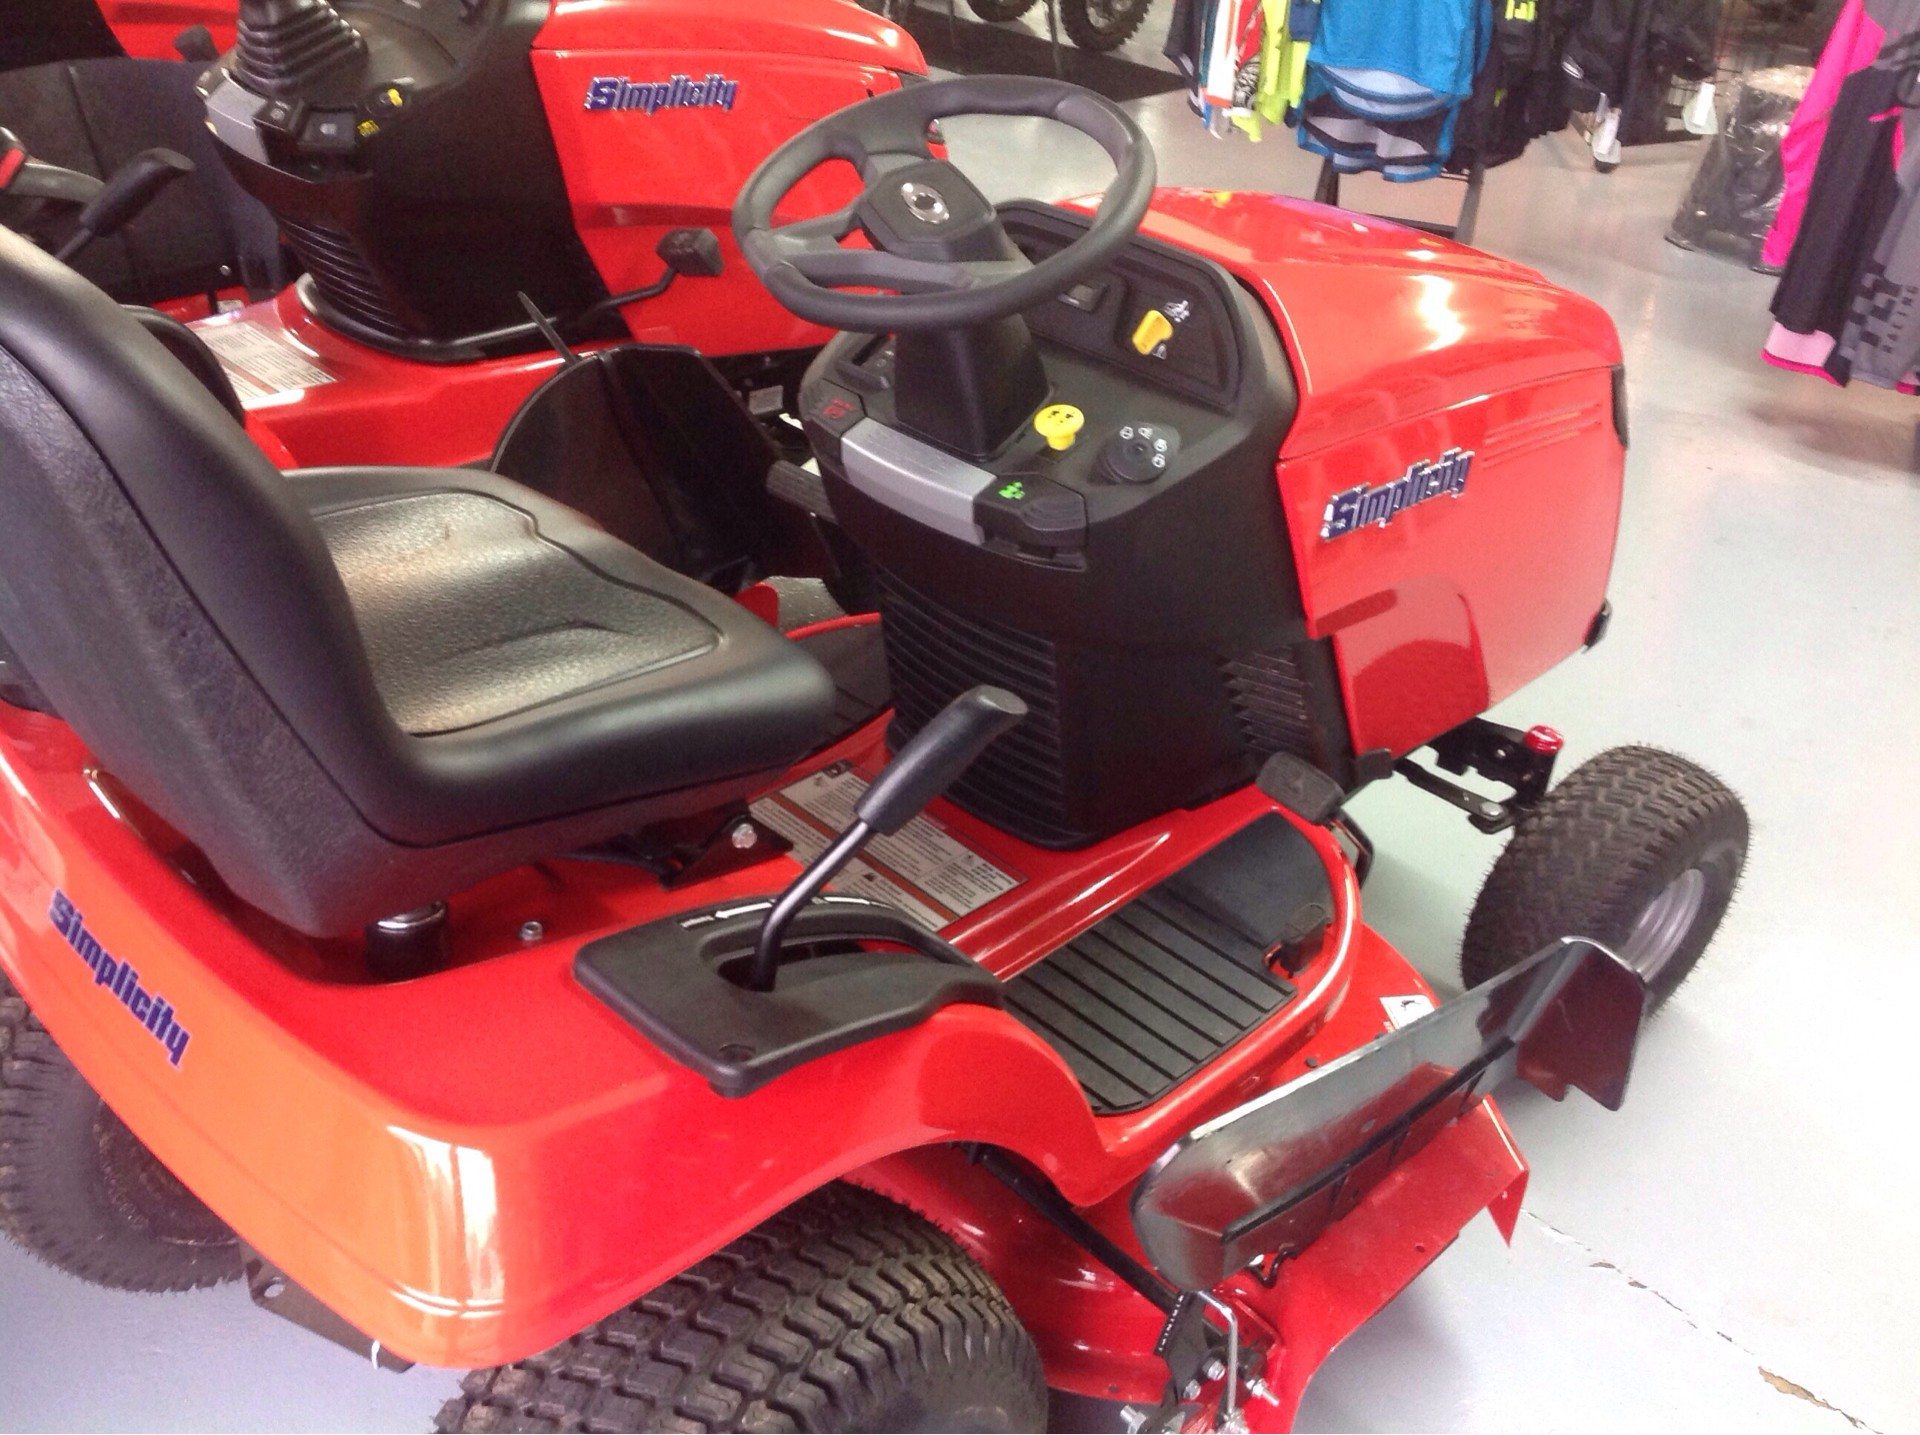 2019 Simplicity Regent 38 in. Briggs & Stratton 23 hp in Lafayette, Indiana - Photo 4